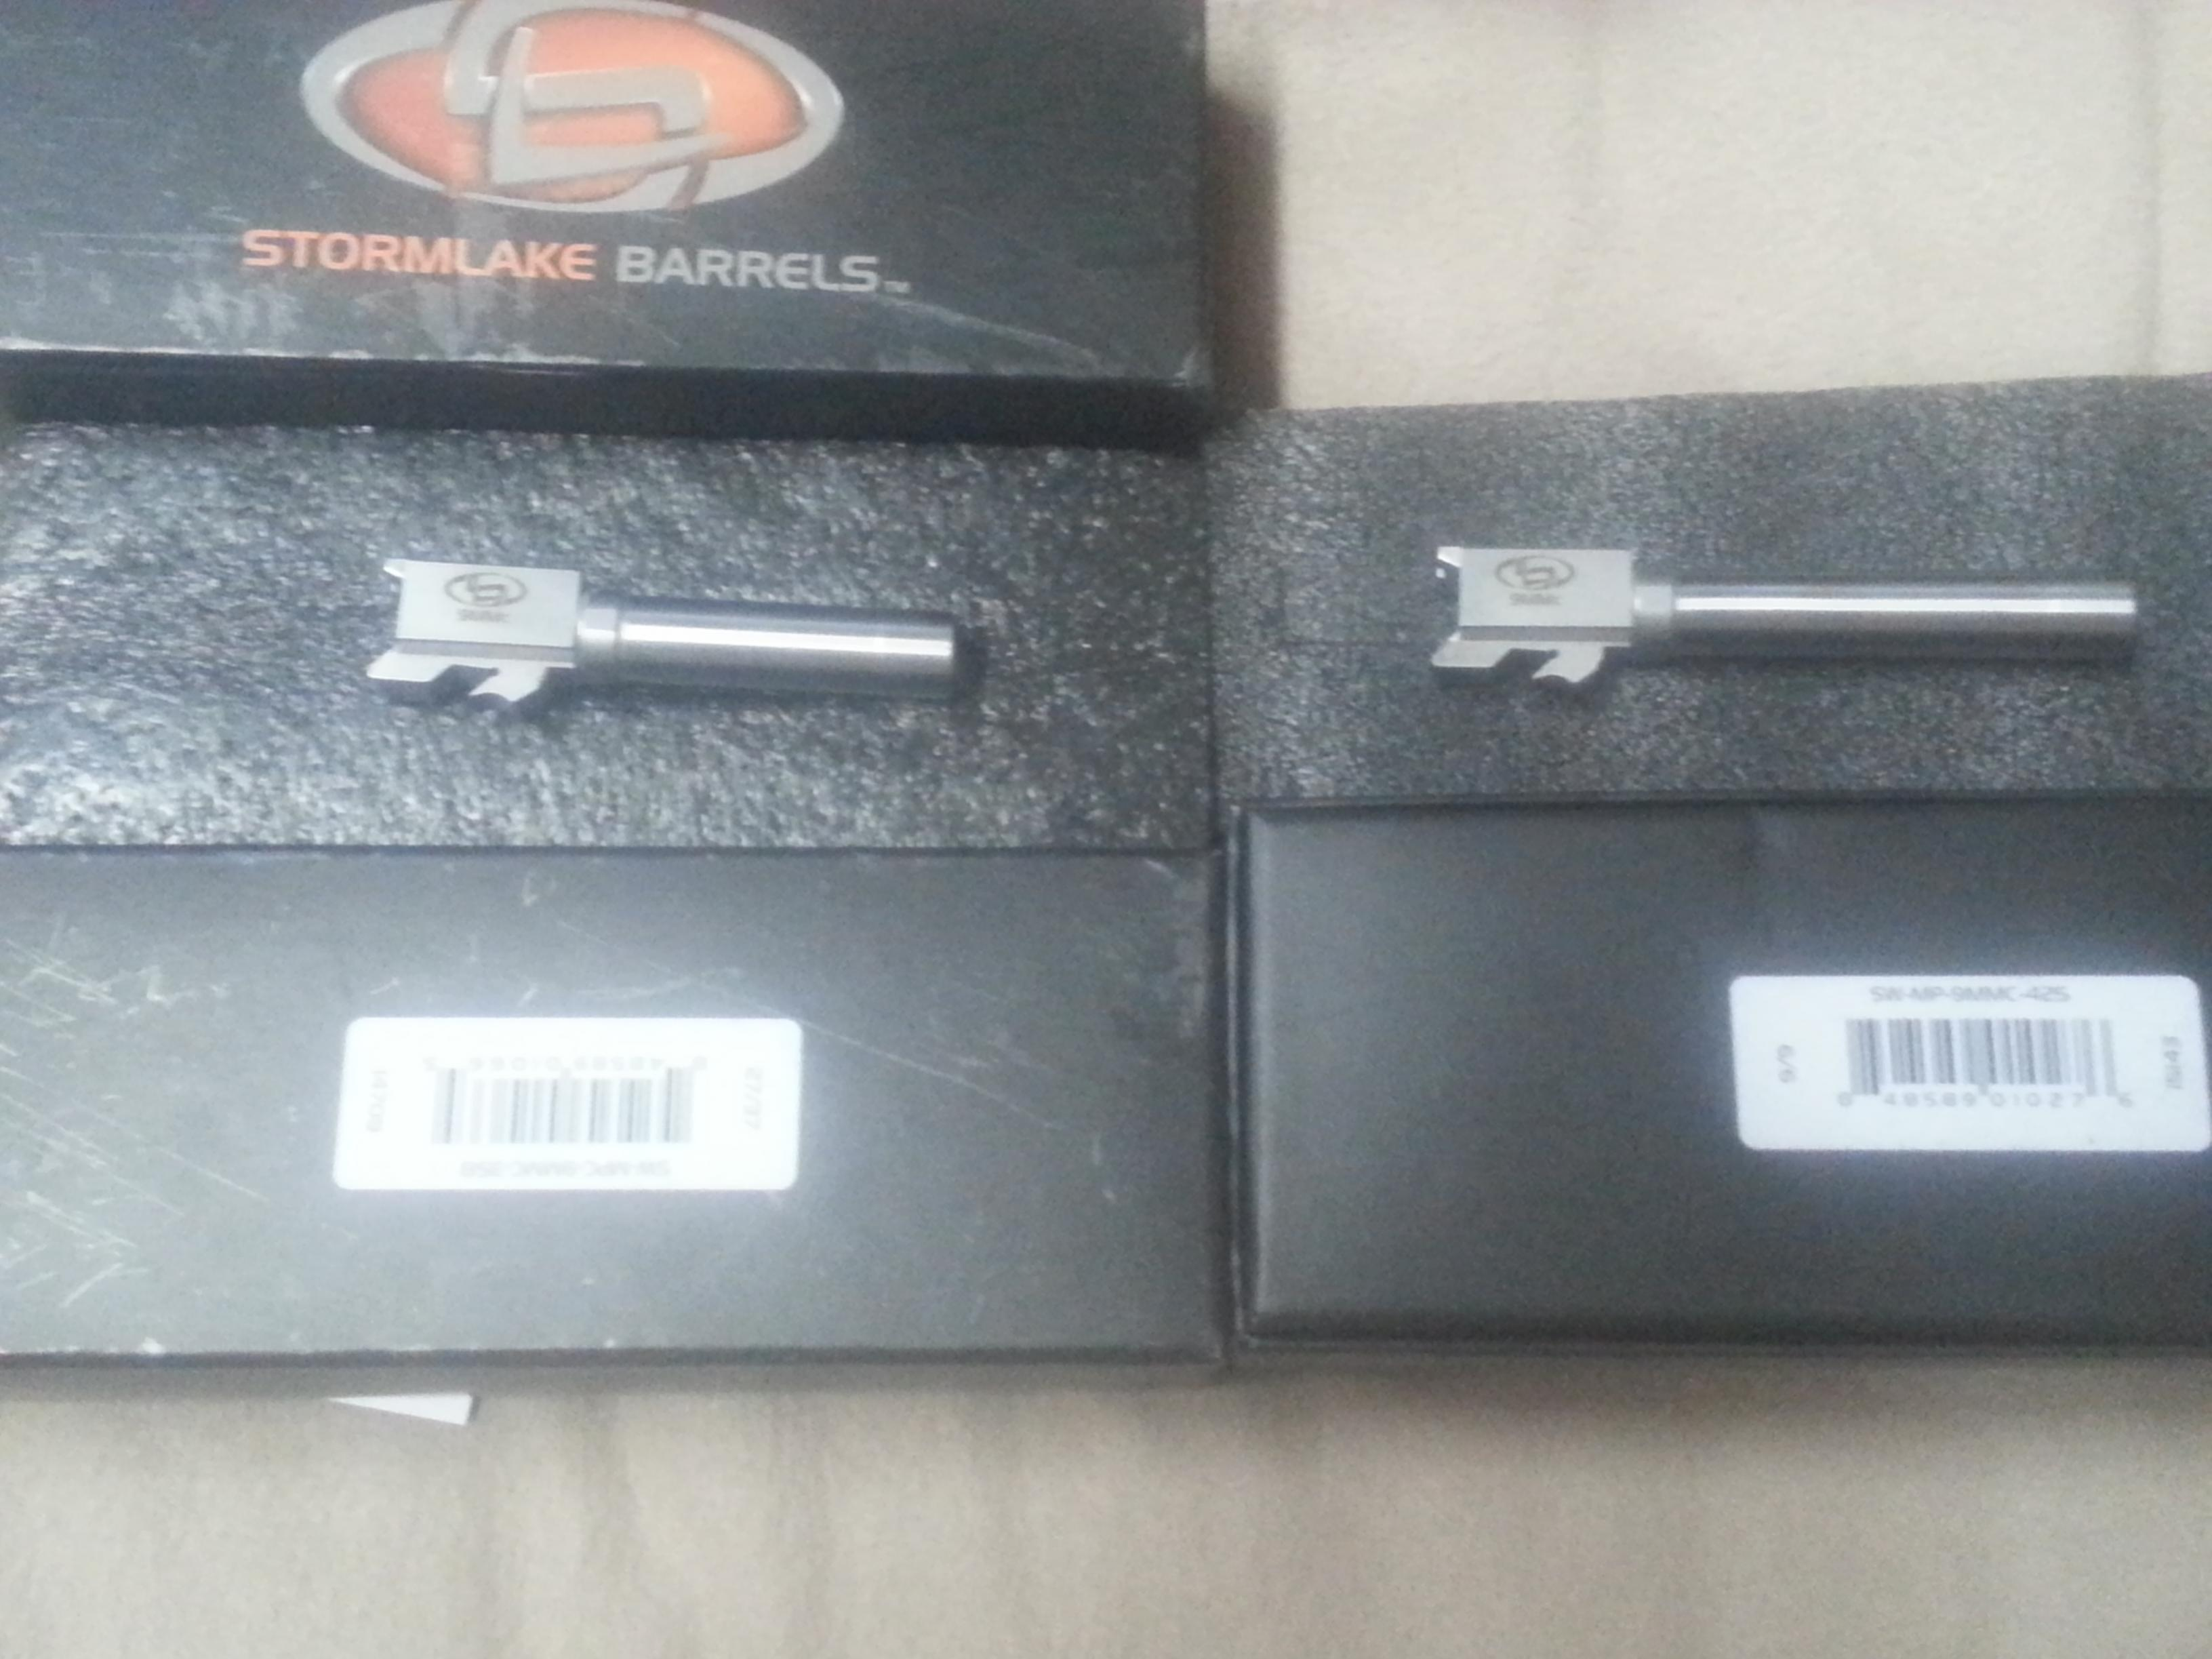 Storm lake conversion barrels  m&p 40 to 9mm full and compact both for 250 or 130 eac-20130817_153646.jpg